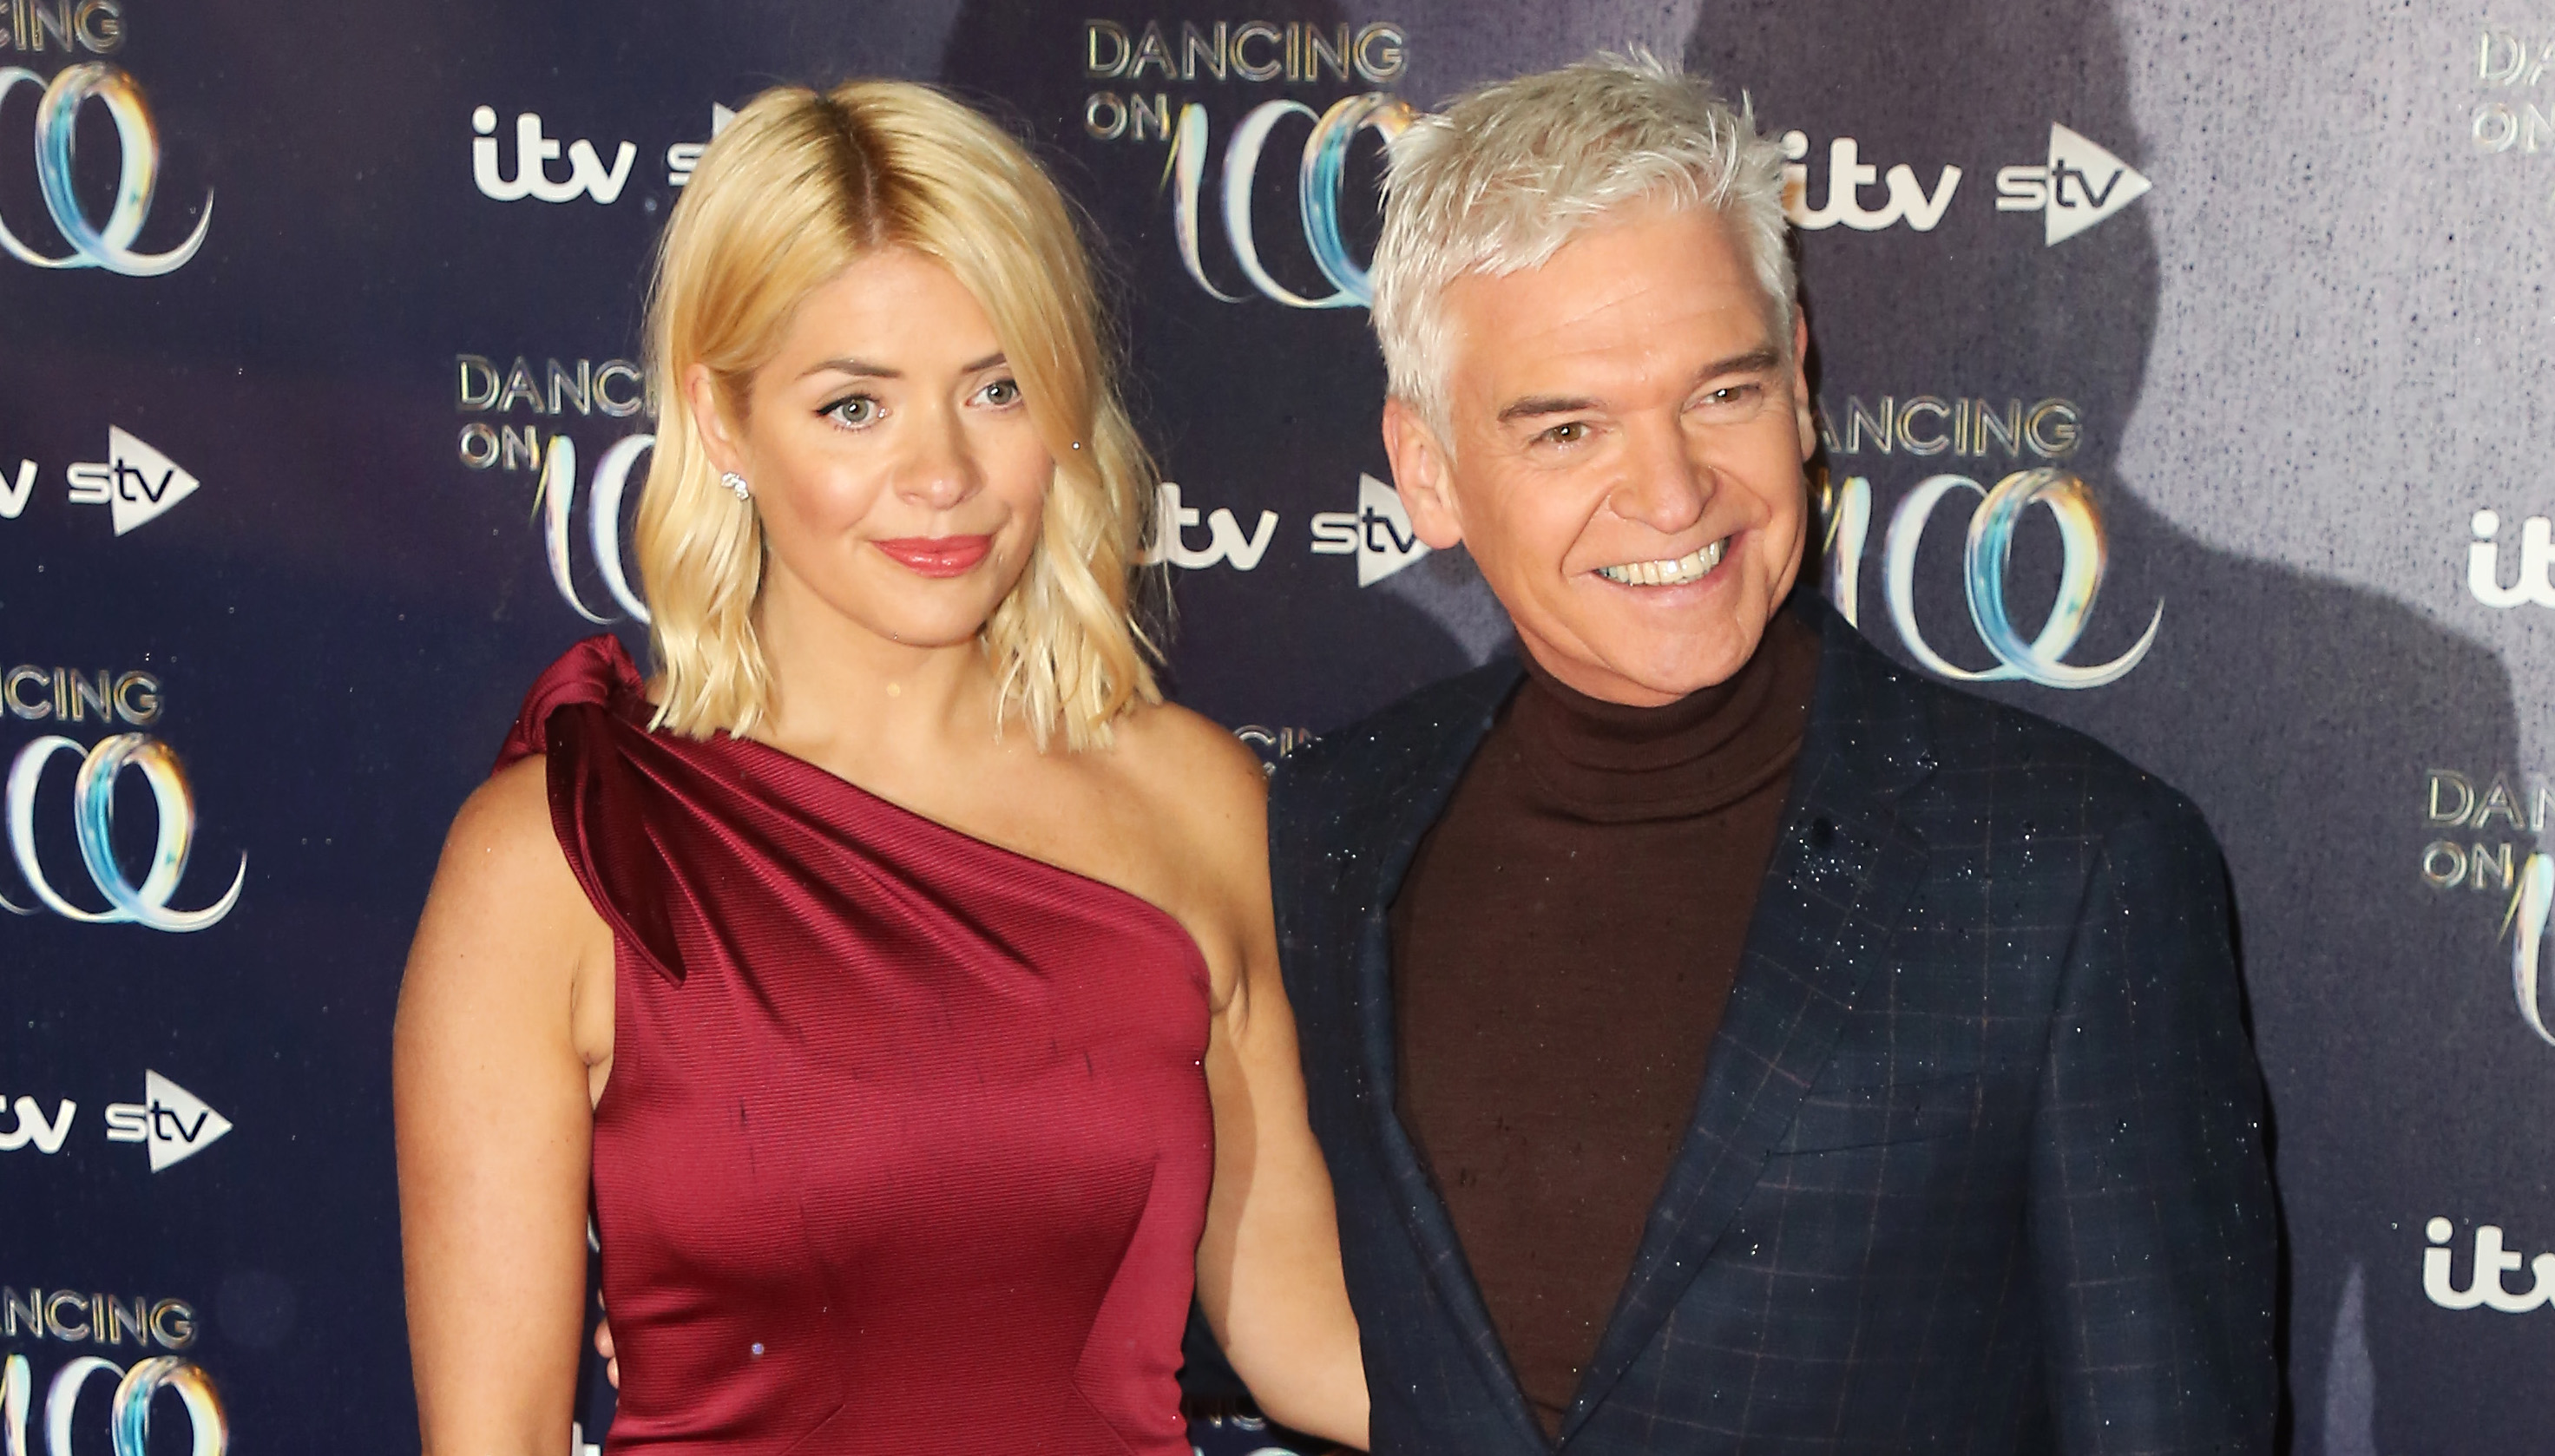 Phillip Schofield hits back at 'feud' claims calling Holly Willoughby the 'sister he never had'